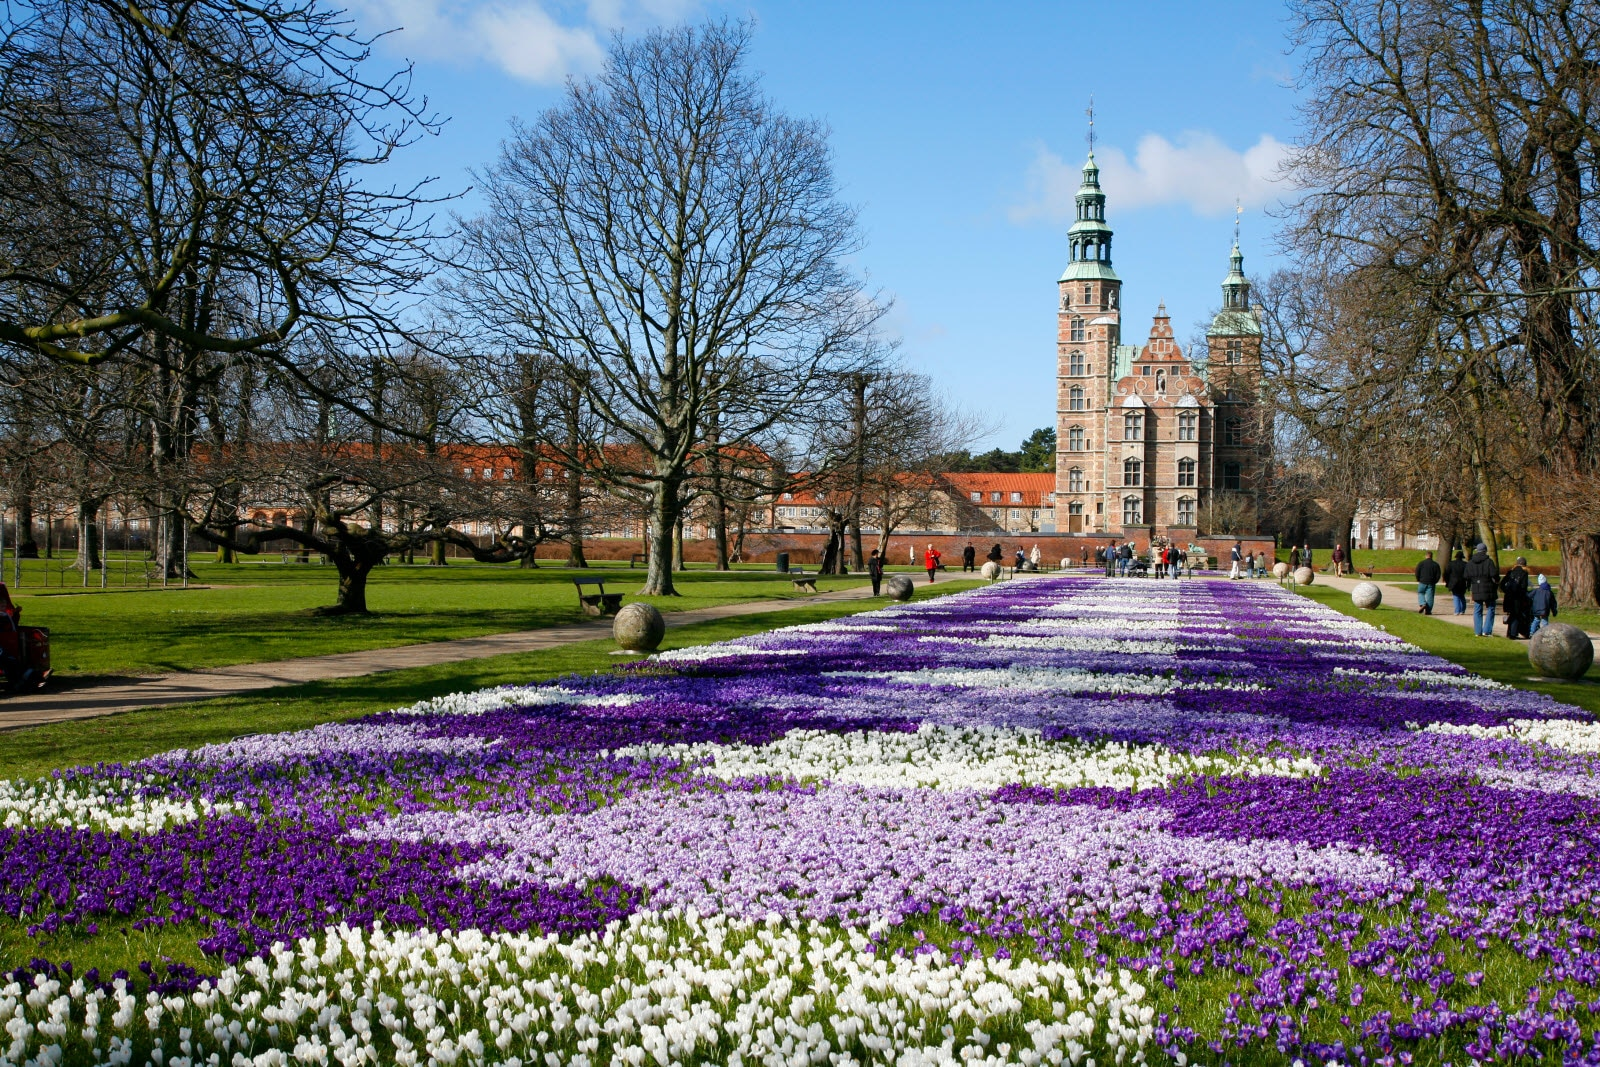 Rosenborg Castle which is a renaissance castle in the center of Copenhagen. It was built in 1606 and is an example of Christian IV's architectural projects. Here seen at springtime.